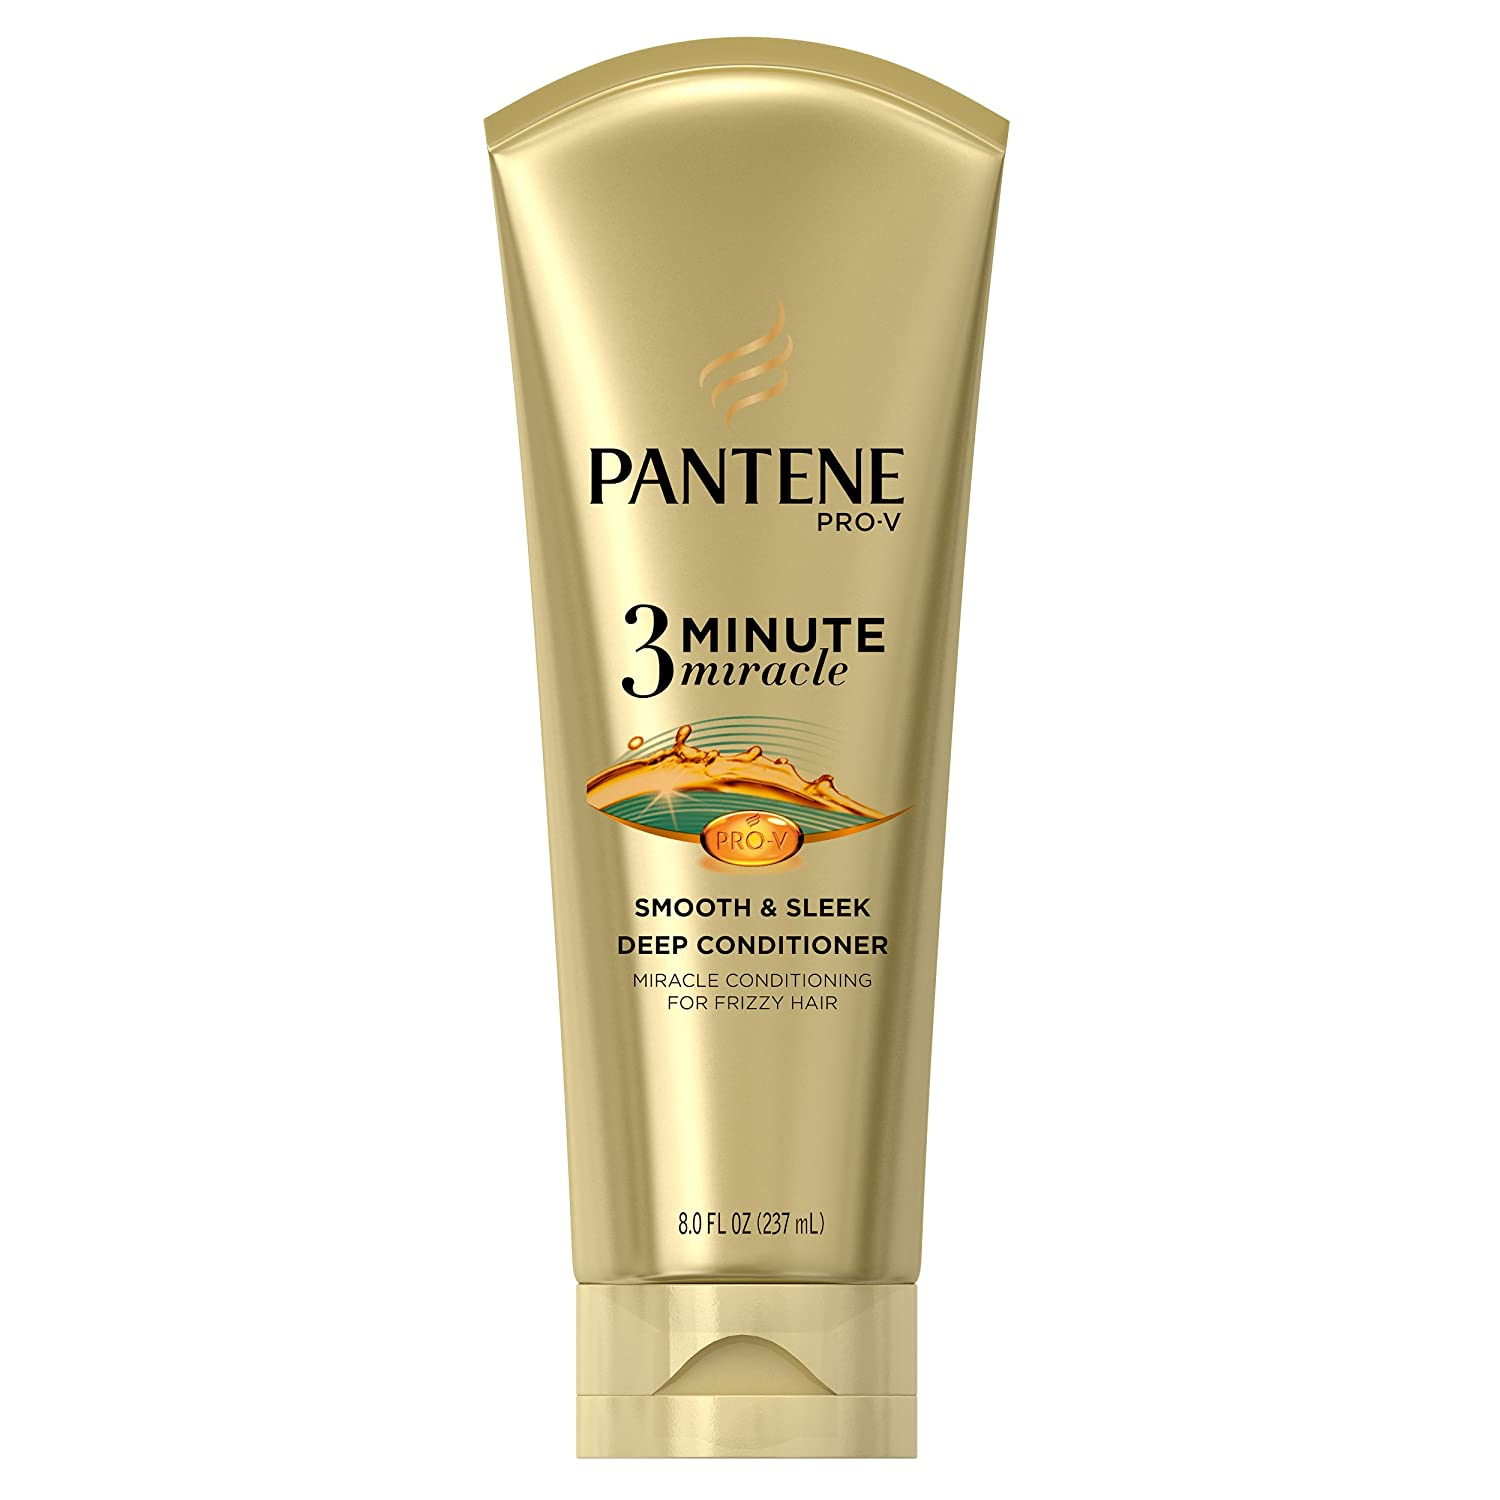 Pantene Smooth and Sleek 3 Minute Miracle Deep Conditioner, 8 Fluid Ounce